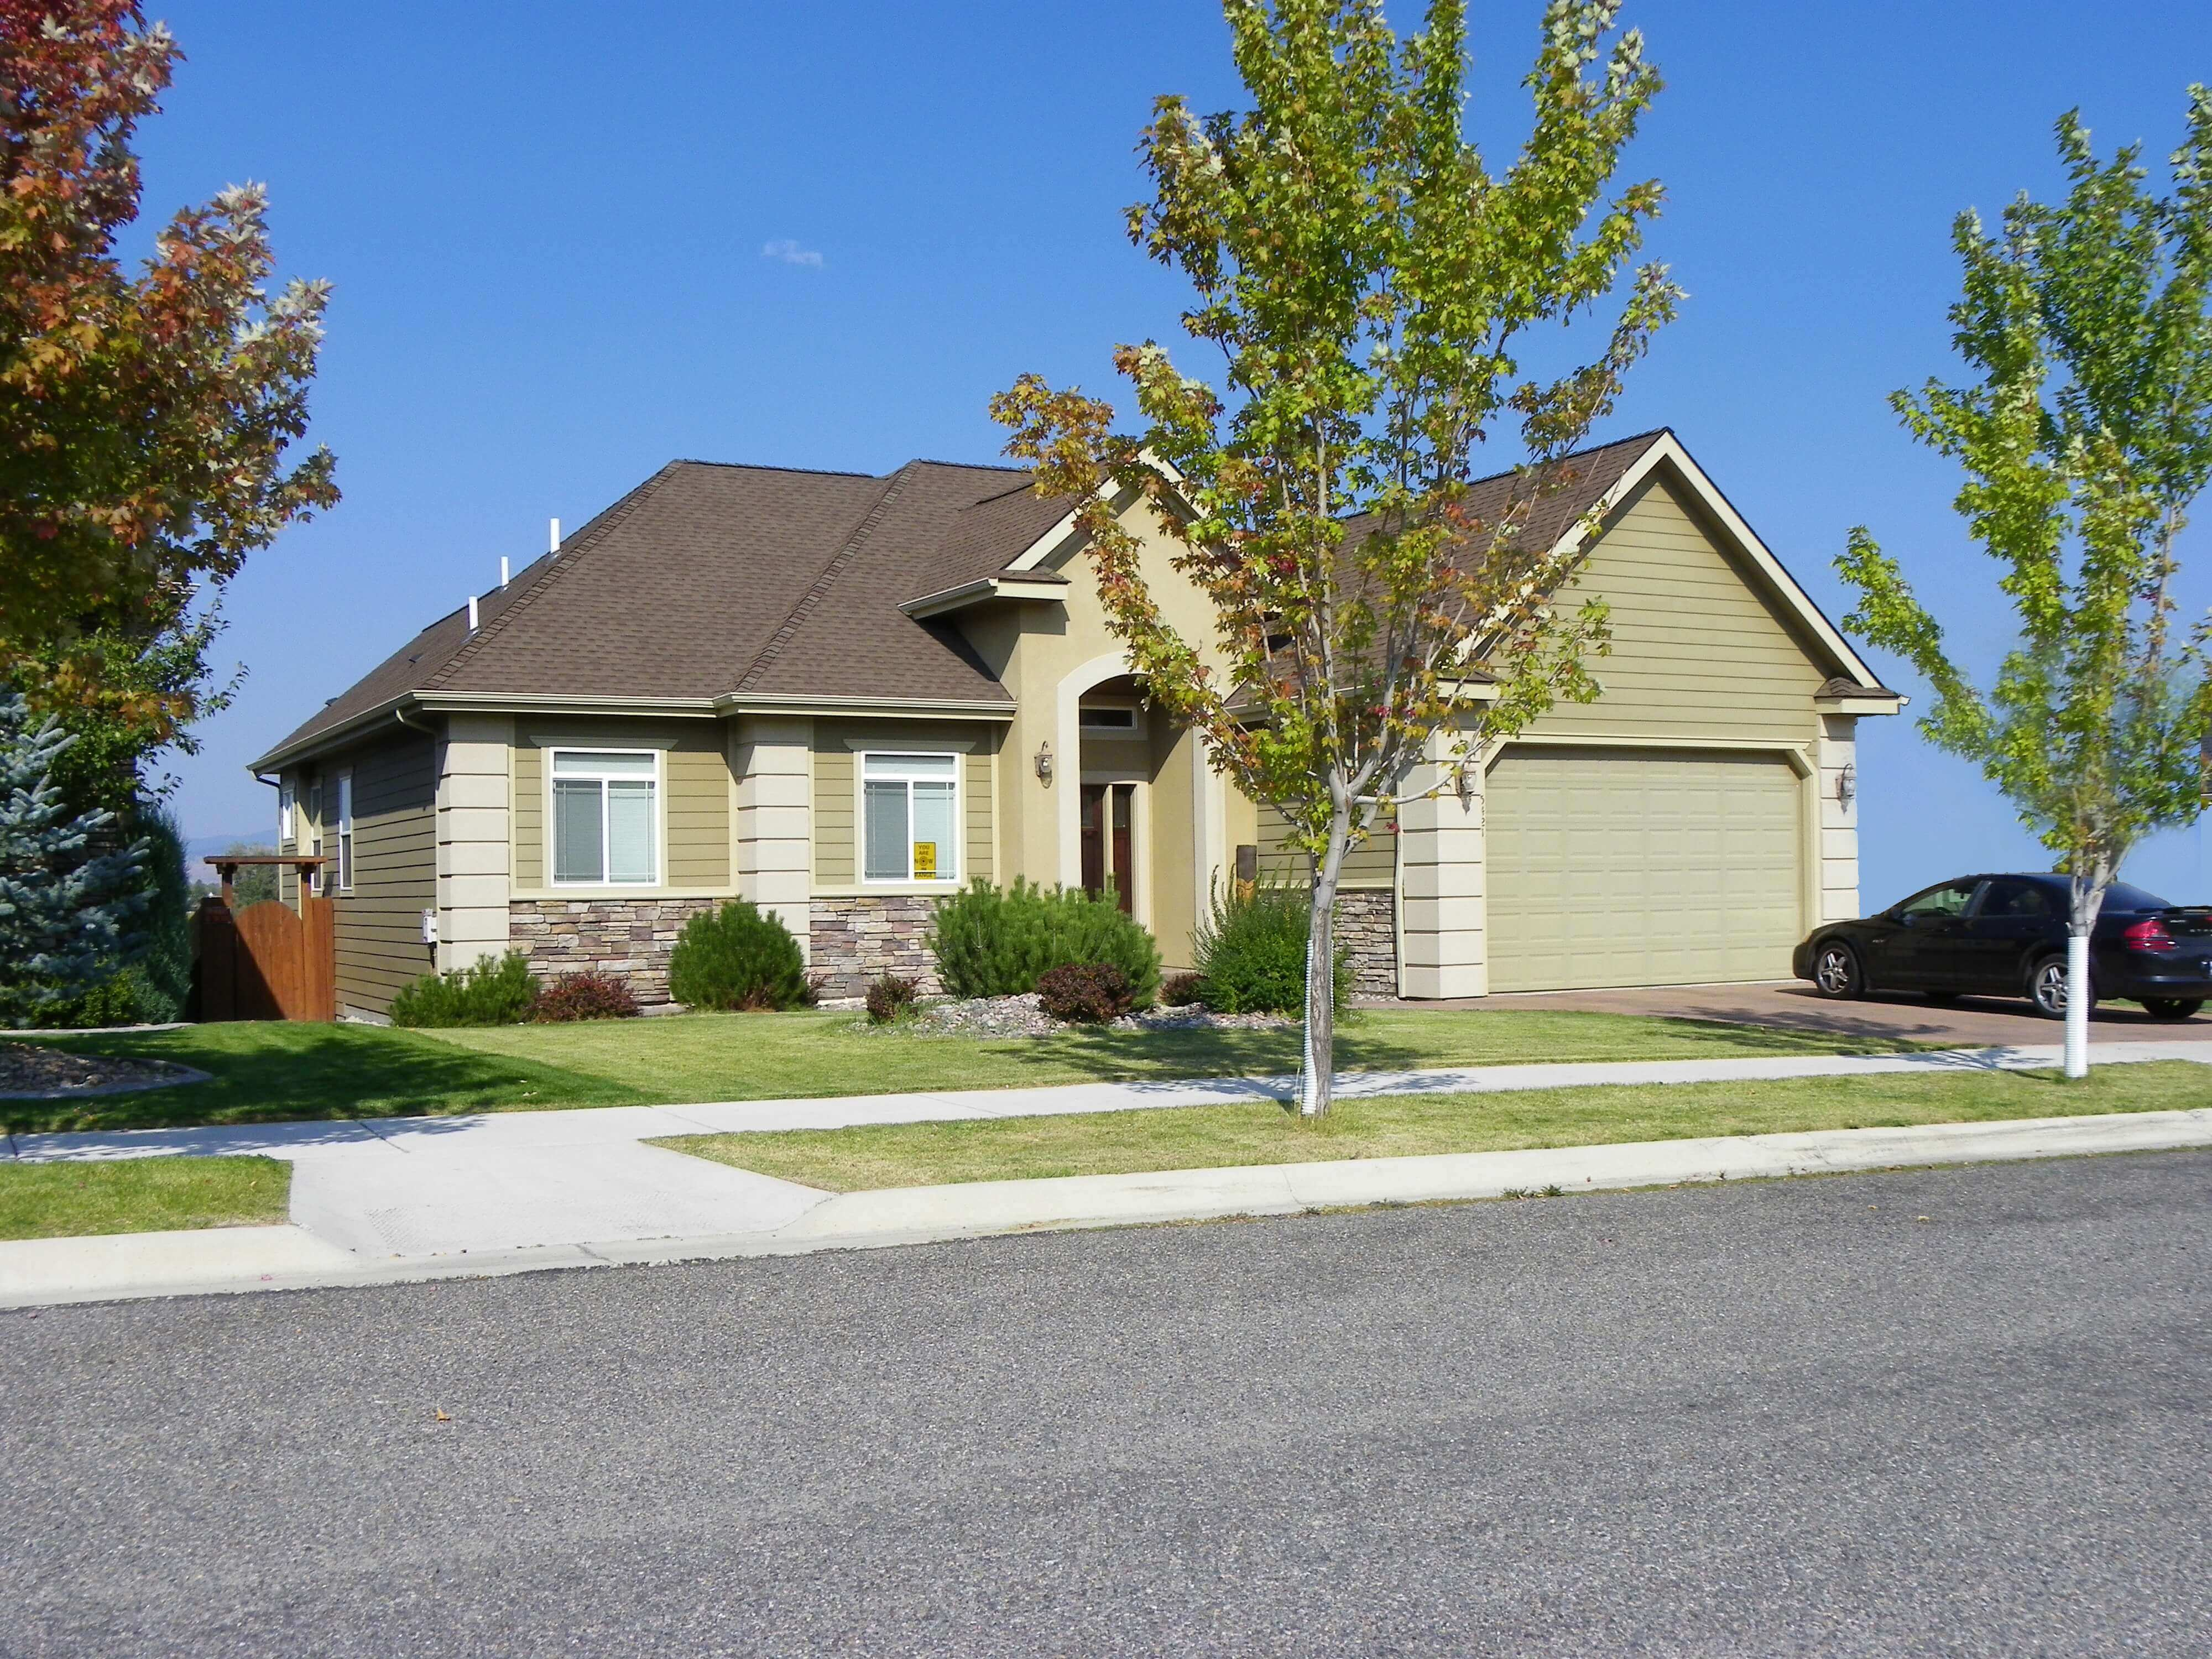 schaumburg il real estate homes for sale falcon living